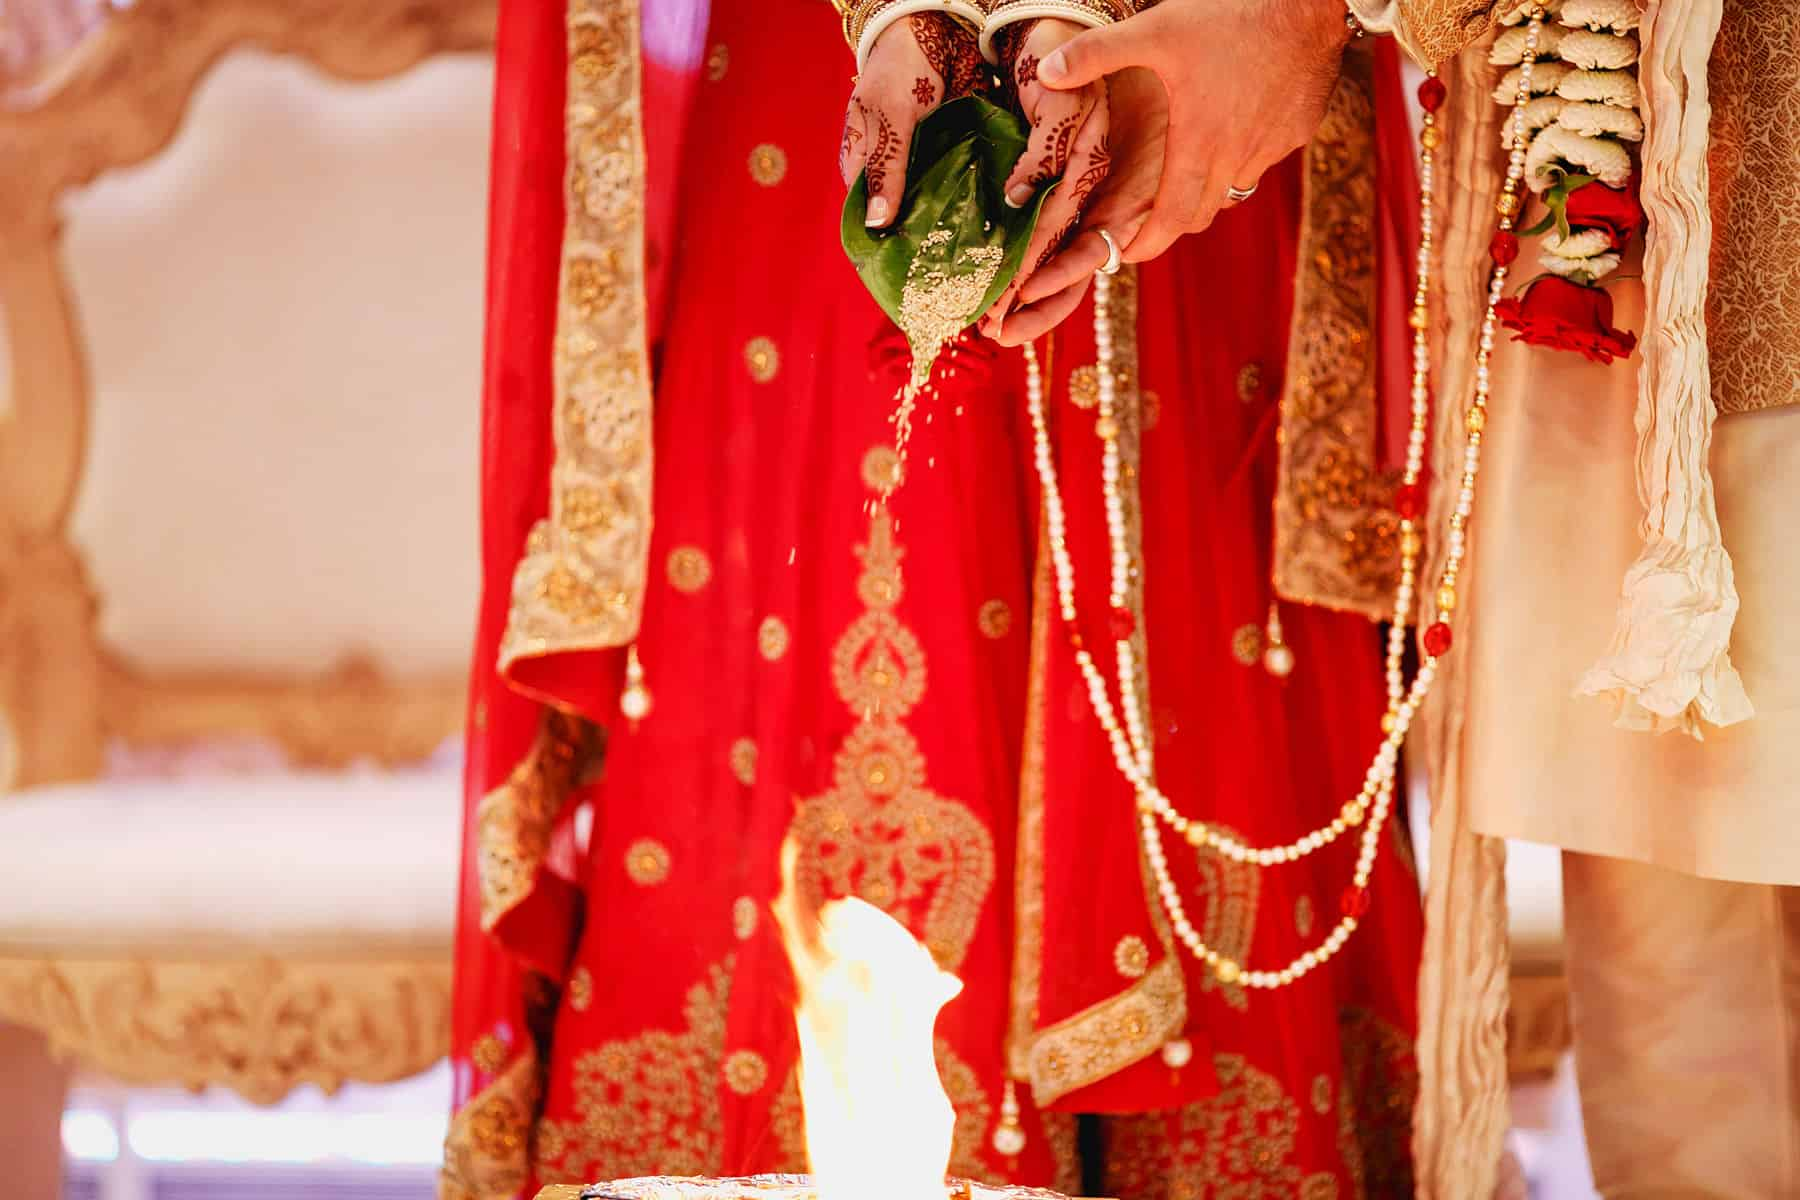 lancaster london asian wedding